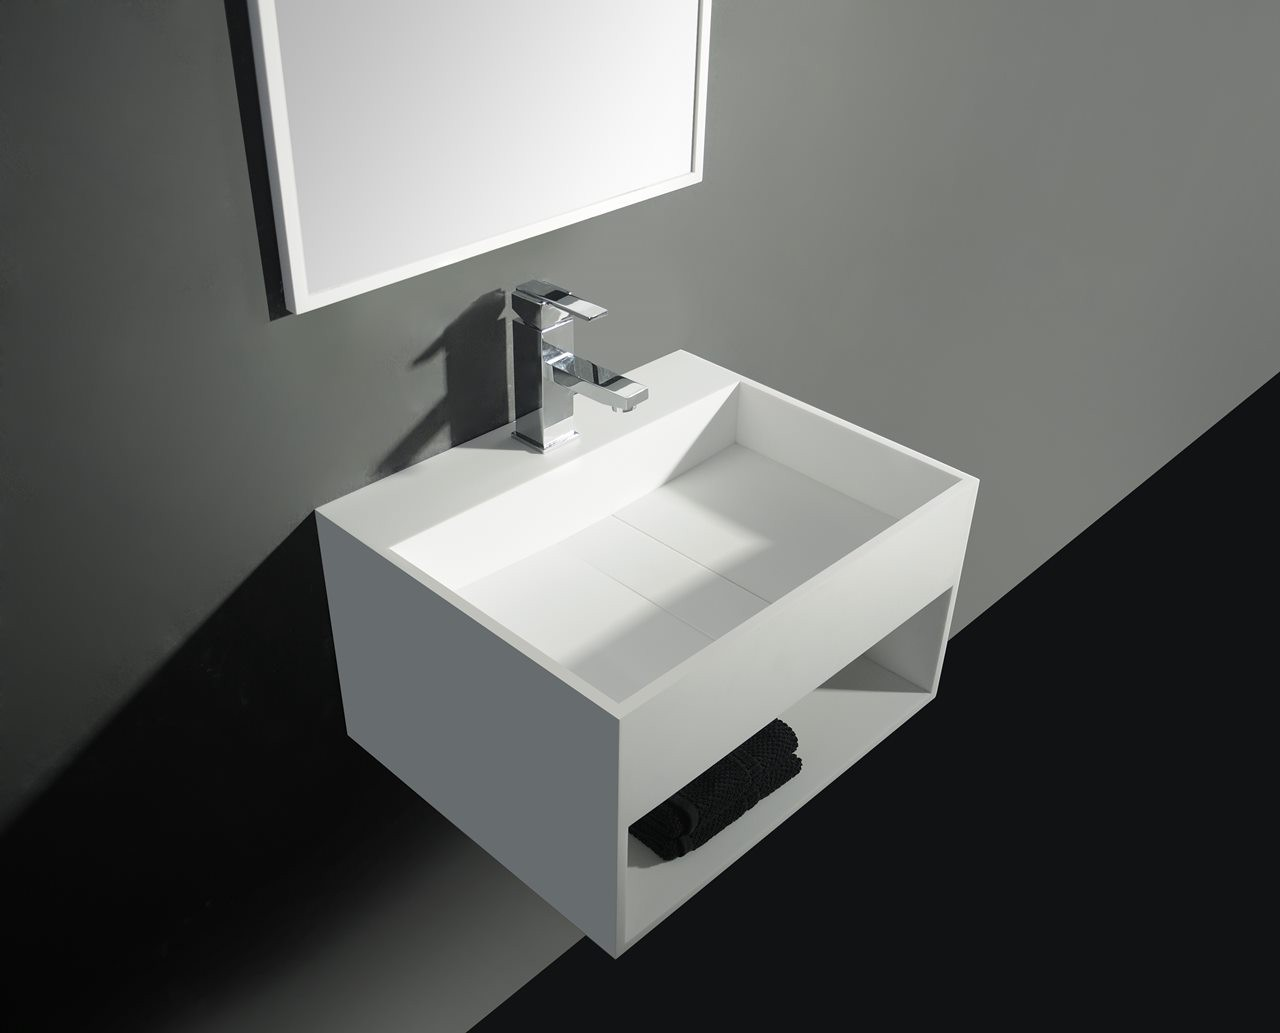 119-278395 SolidCUBE washbasin 600x460x300mm